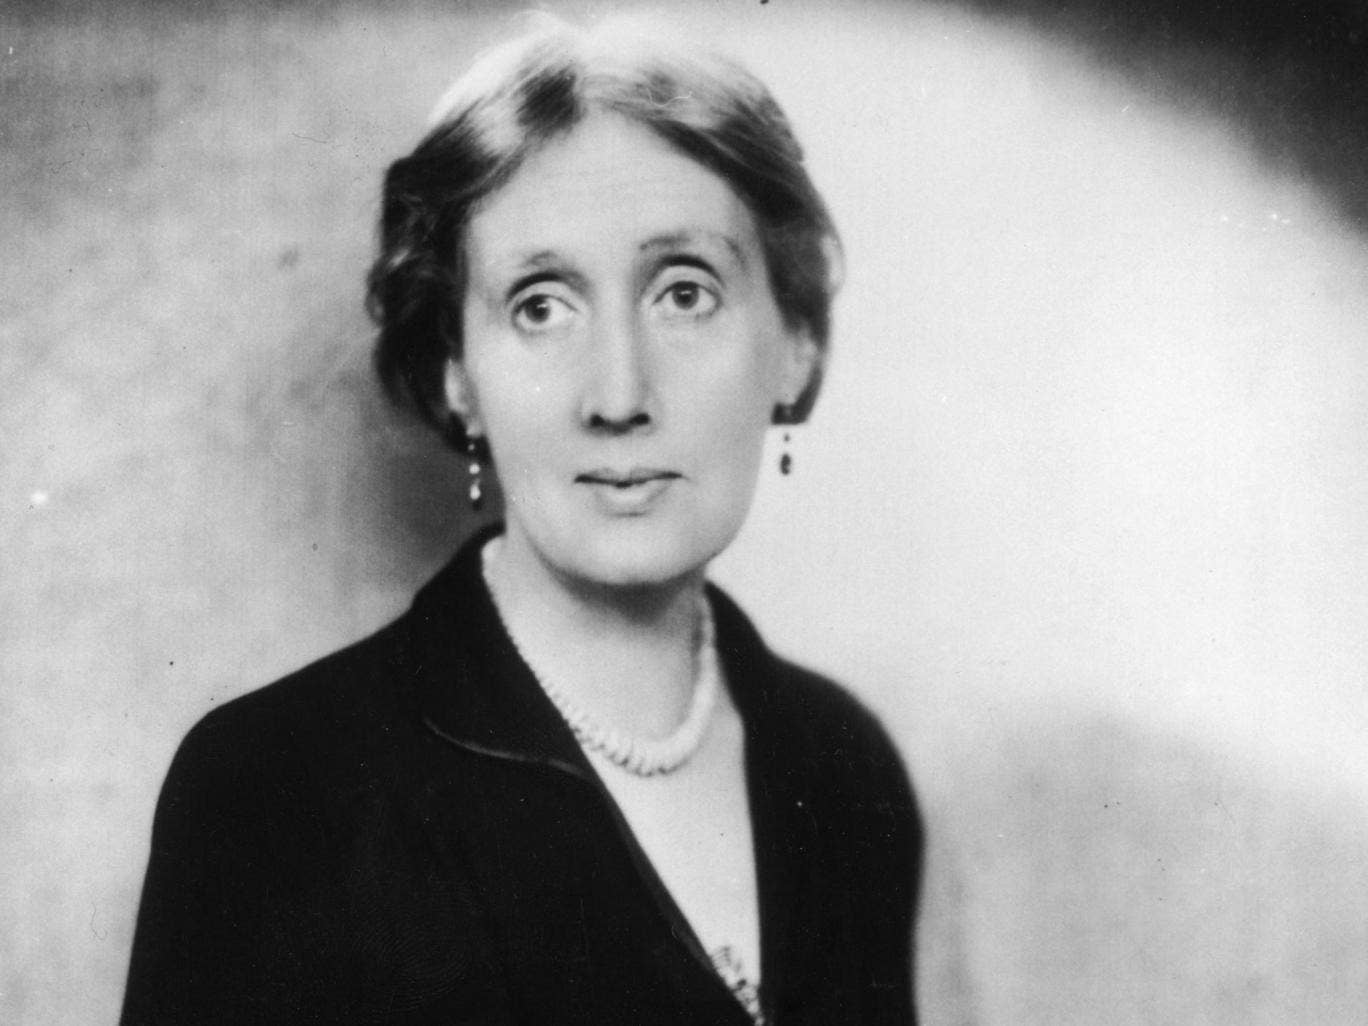 Writer Virginia Woolf is the subject of a new exhibition at the National Portrait Gallery